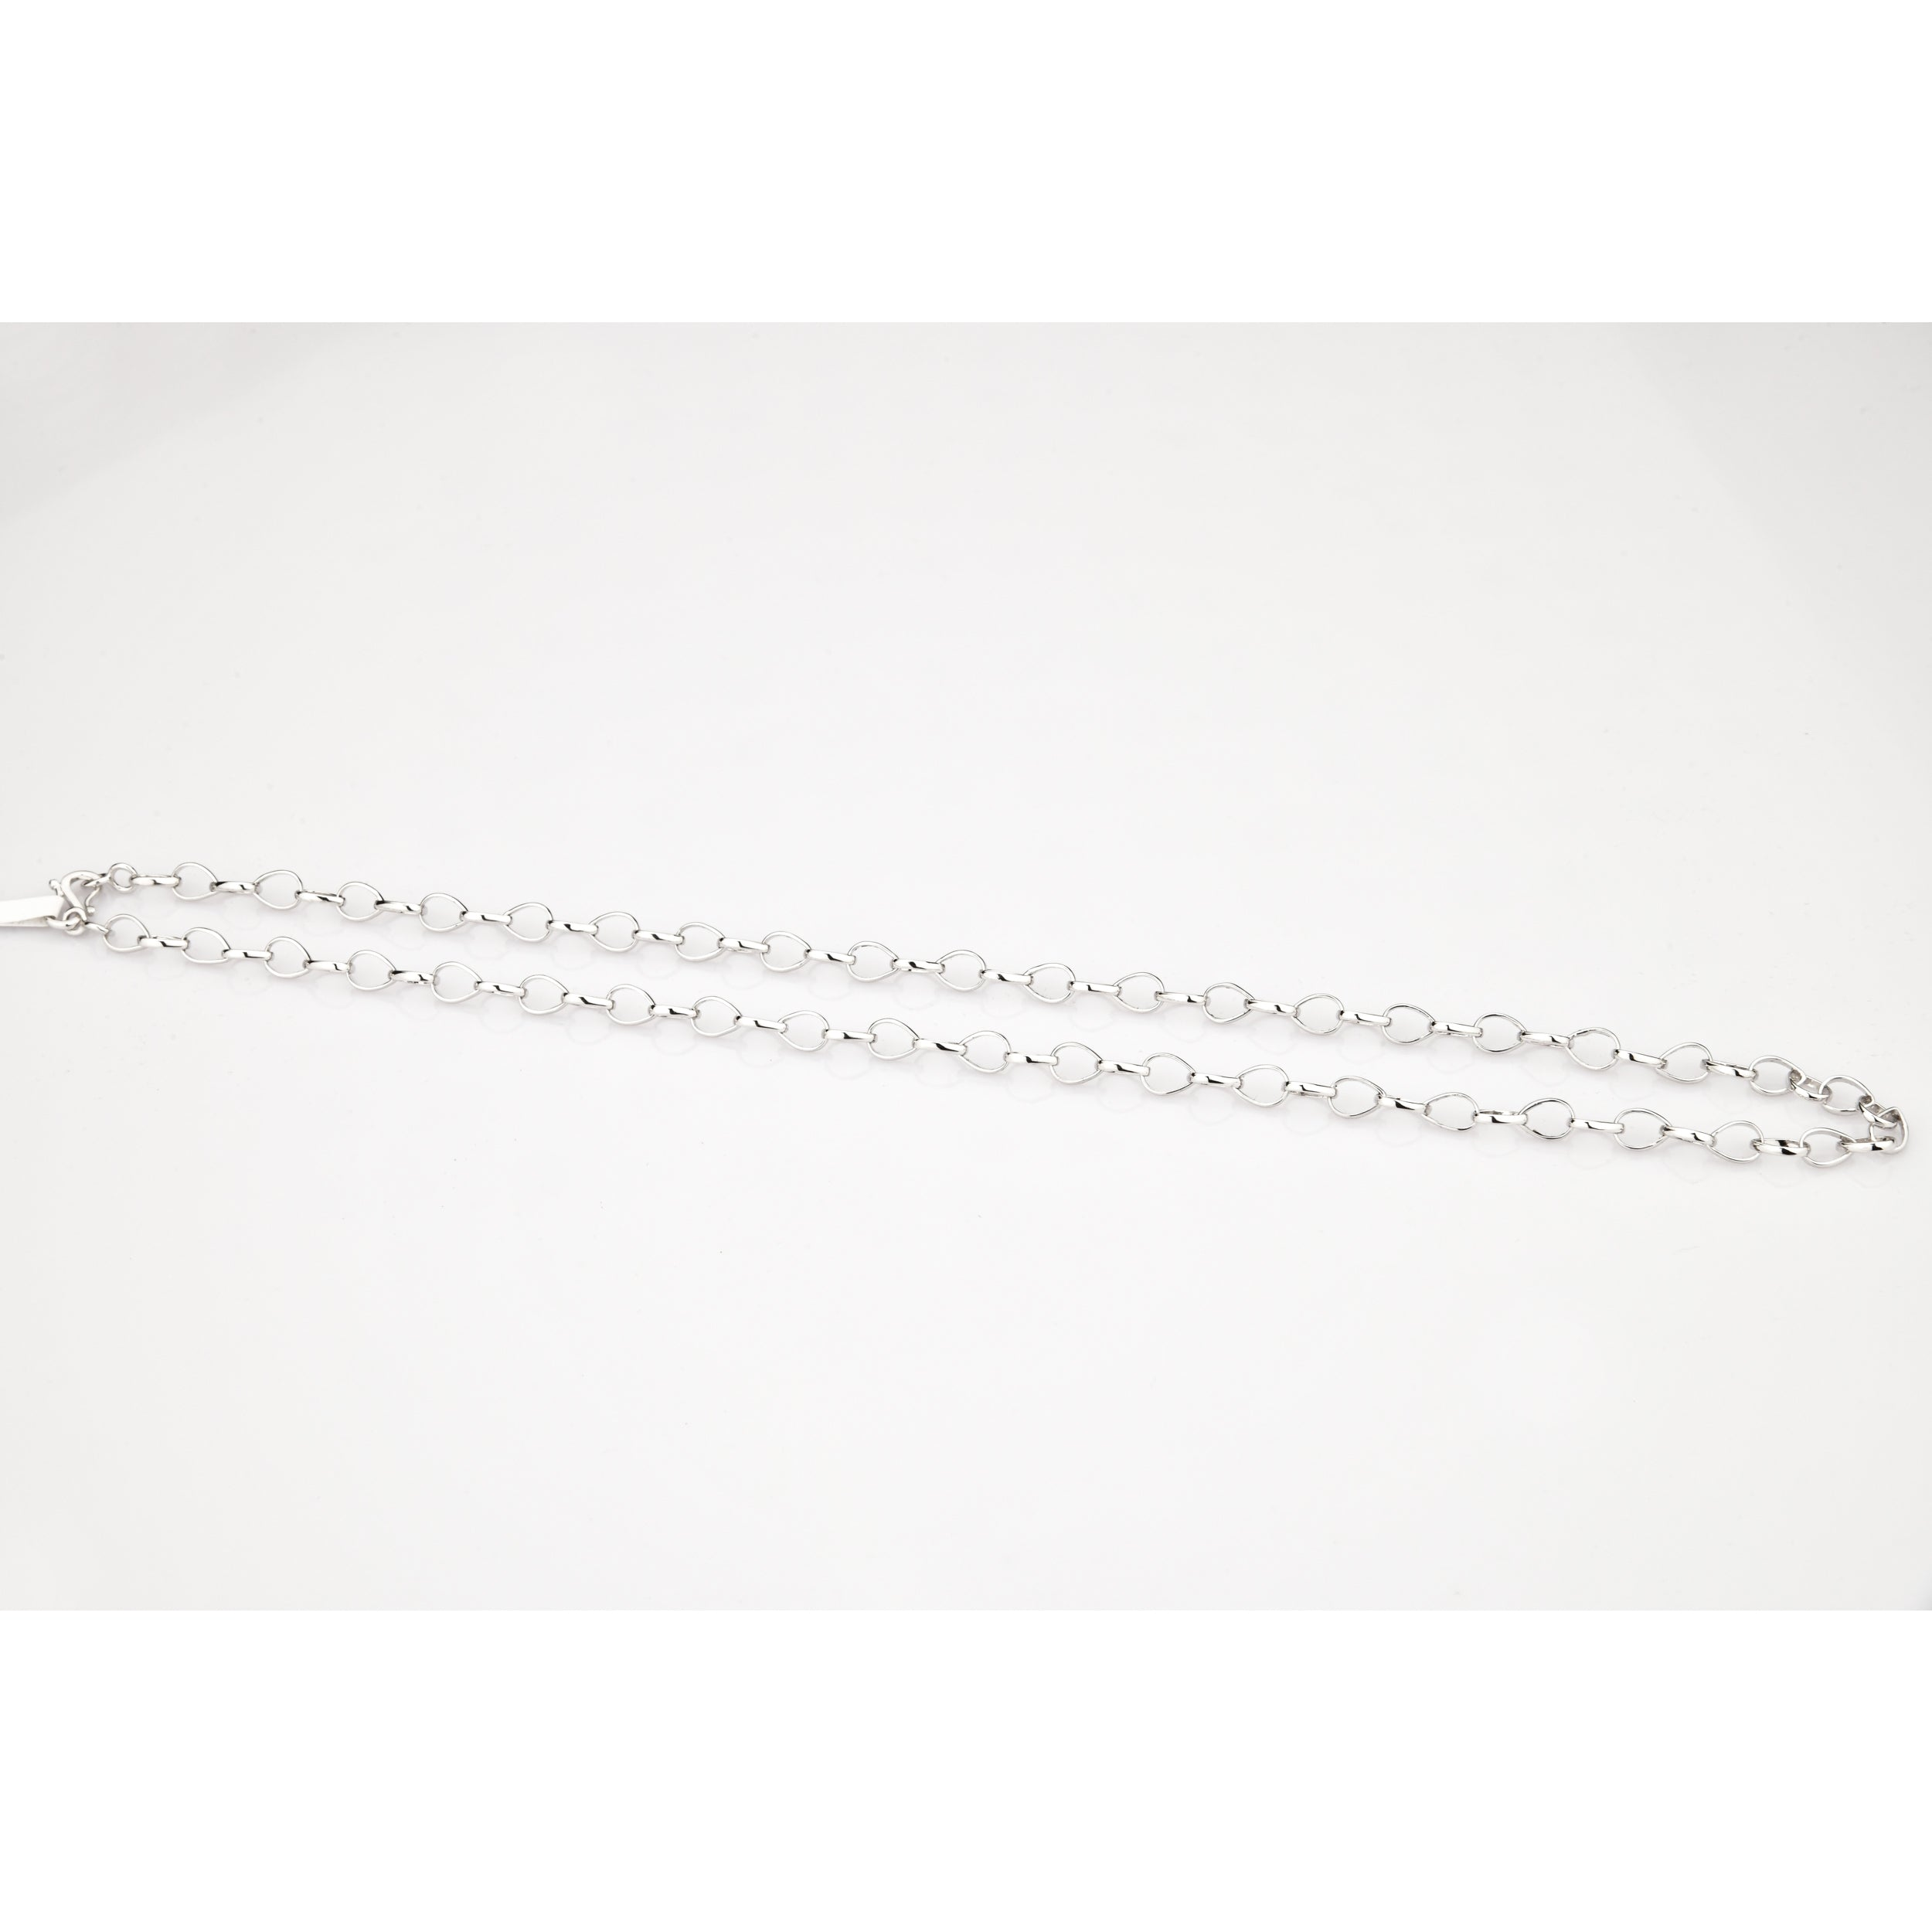 Designer Platinum Chain with Round Links JL PT 778